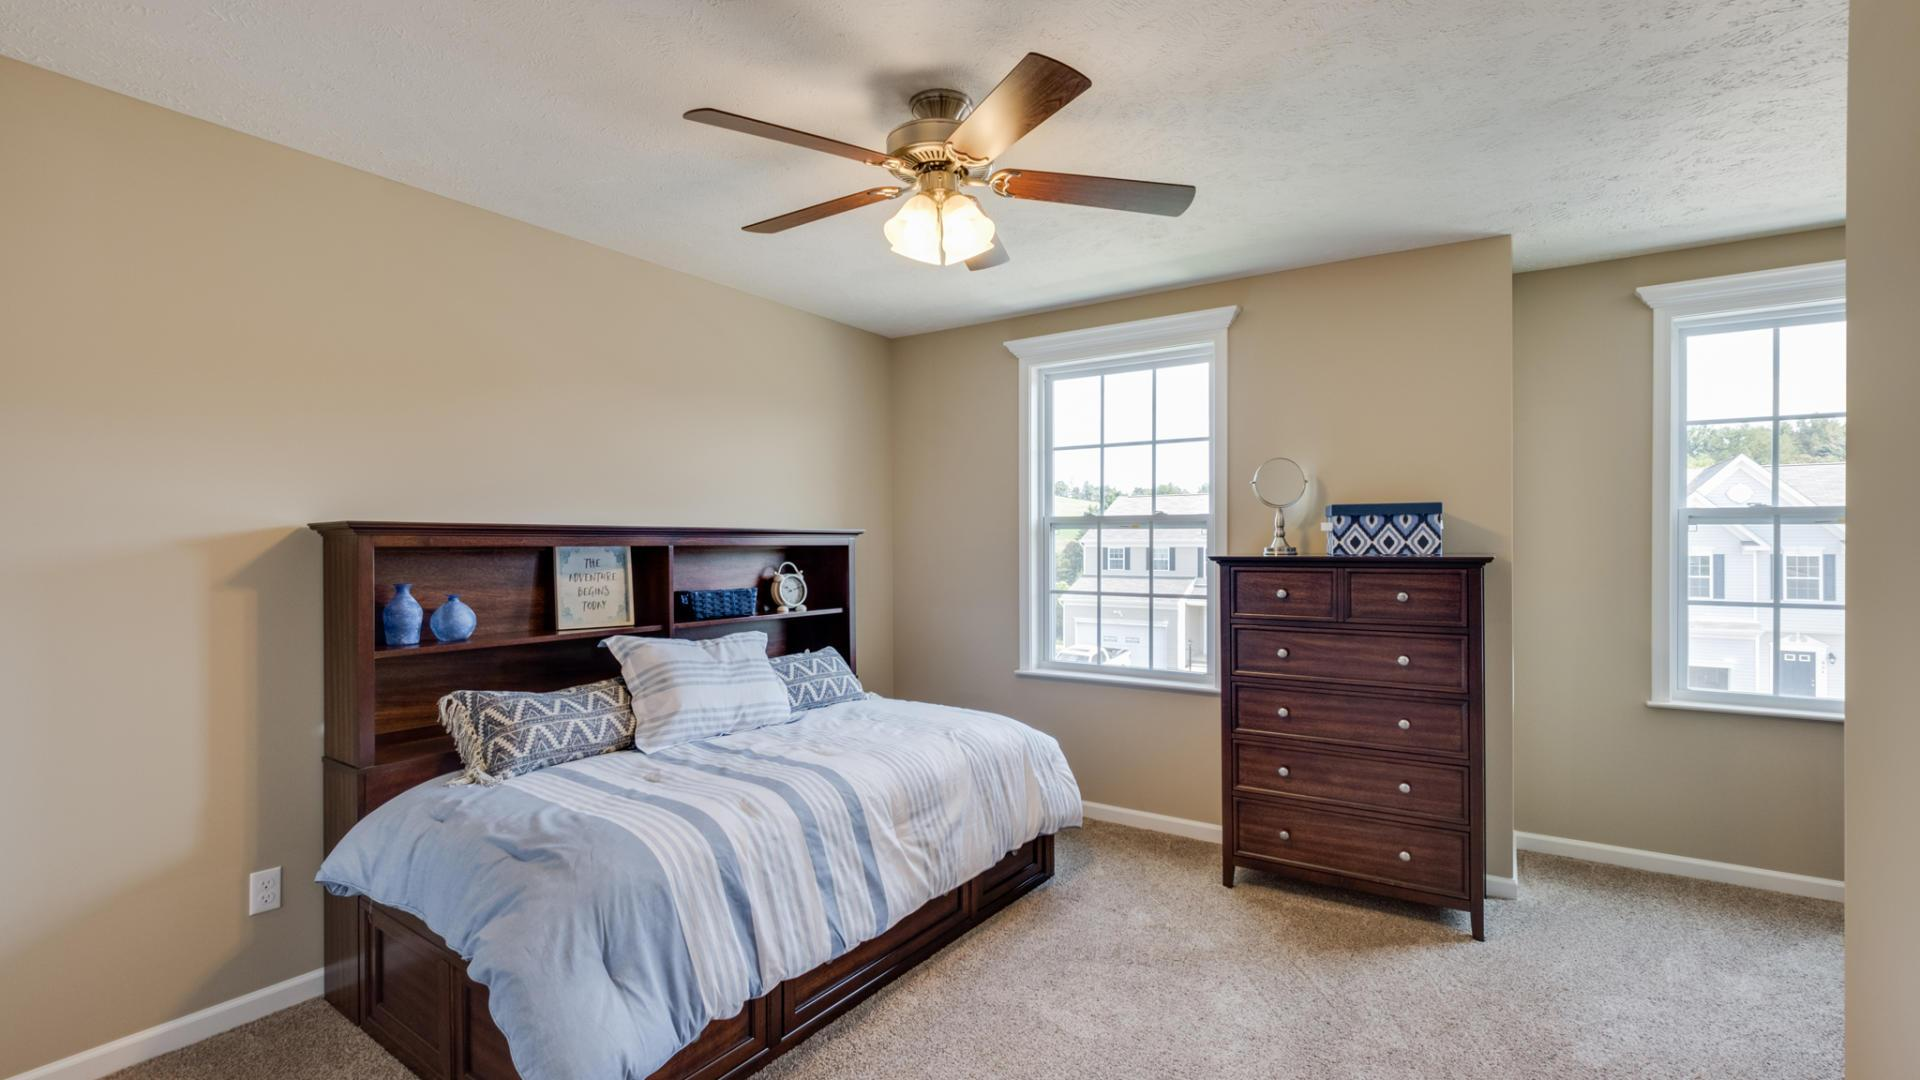 Bedroom featured in the Boston By Maronda Homes in Pittsburgh, PA